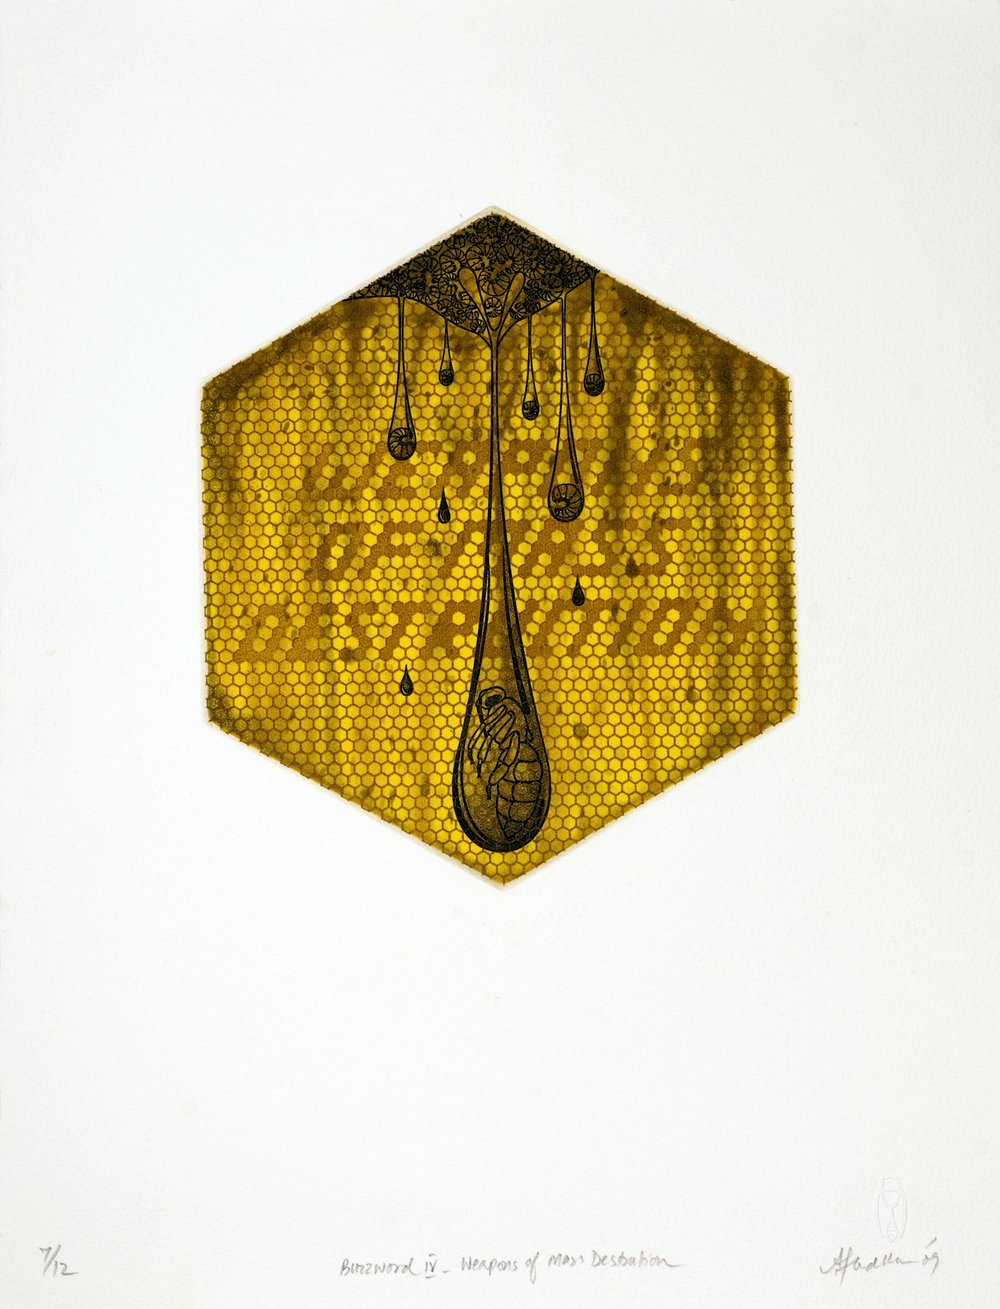 Buzzword -IV (Weapons of Mass Destruction) , etching, 18.25 x 21 cm